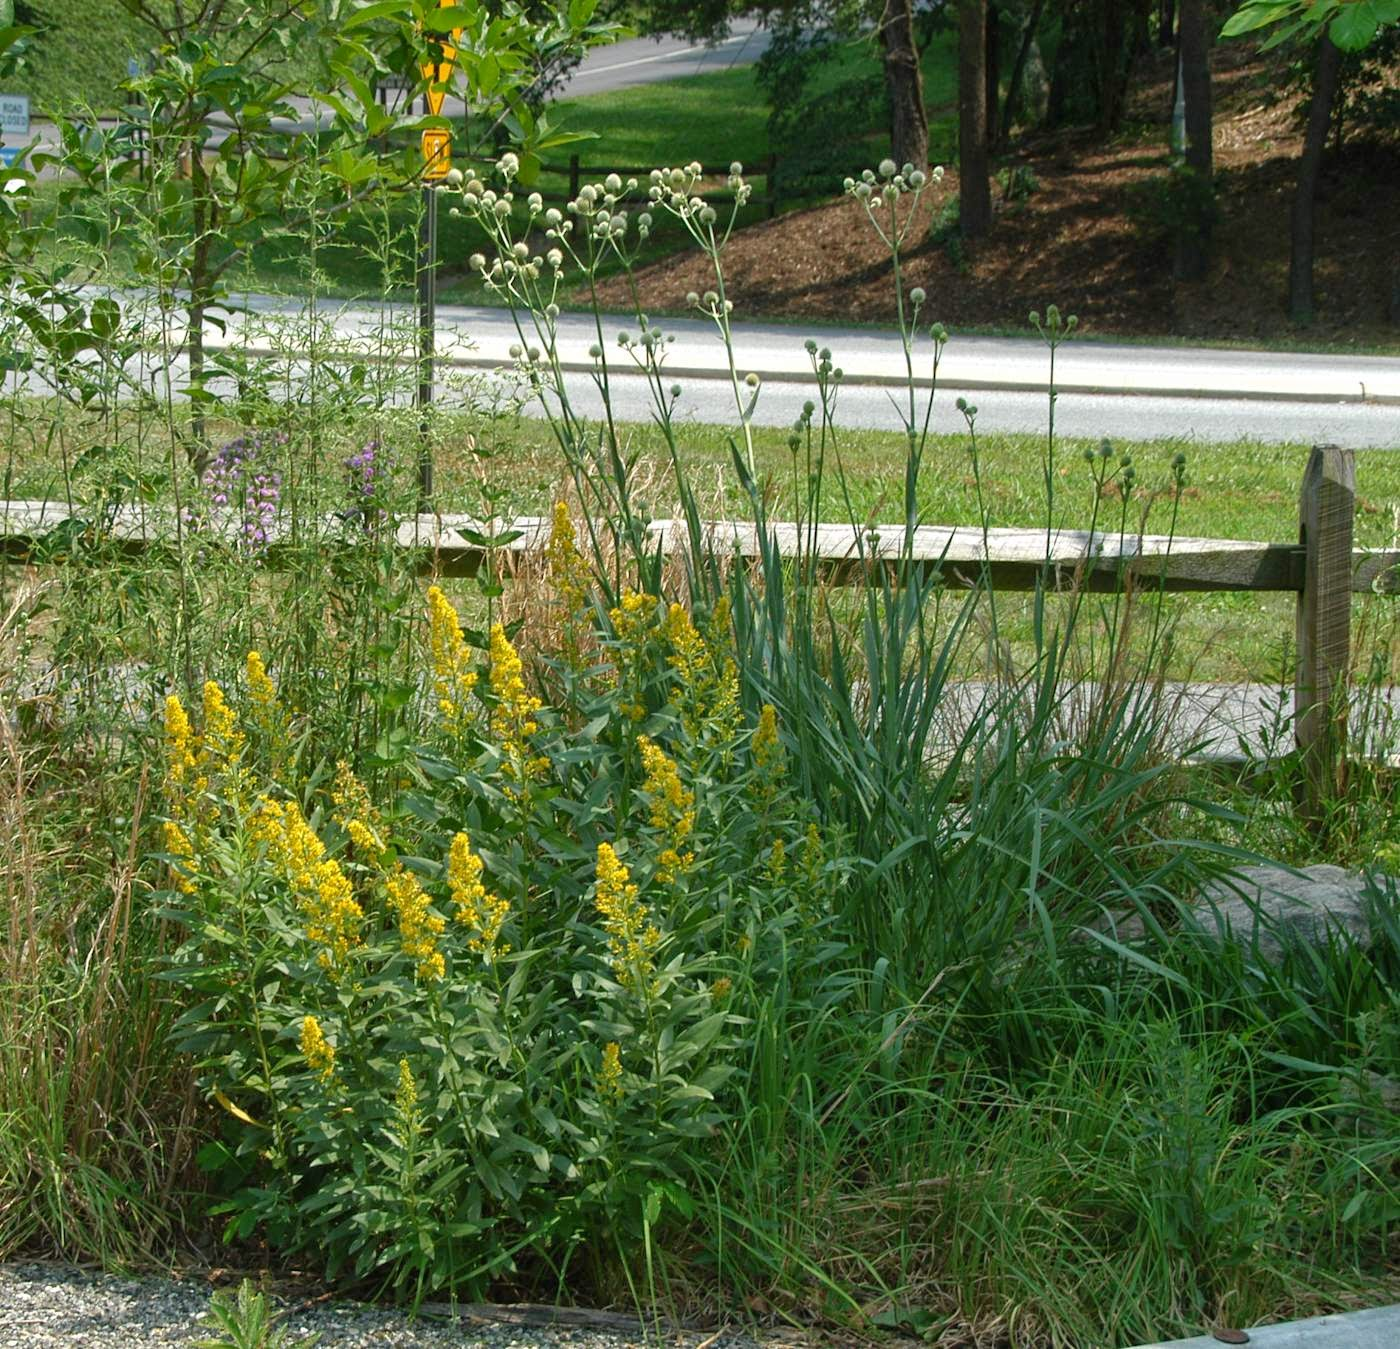 Some suggested rain garden plants